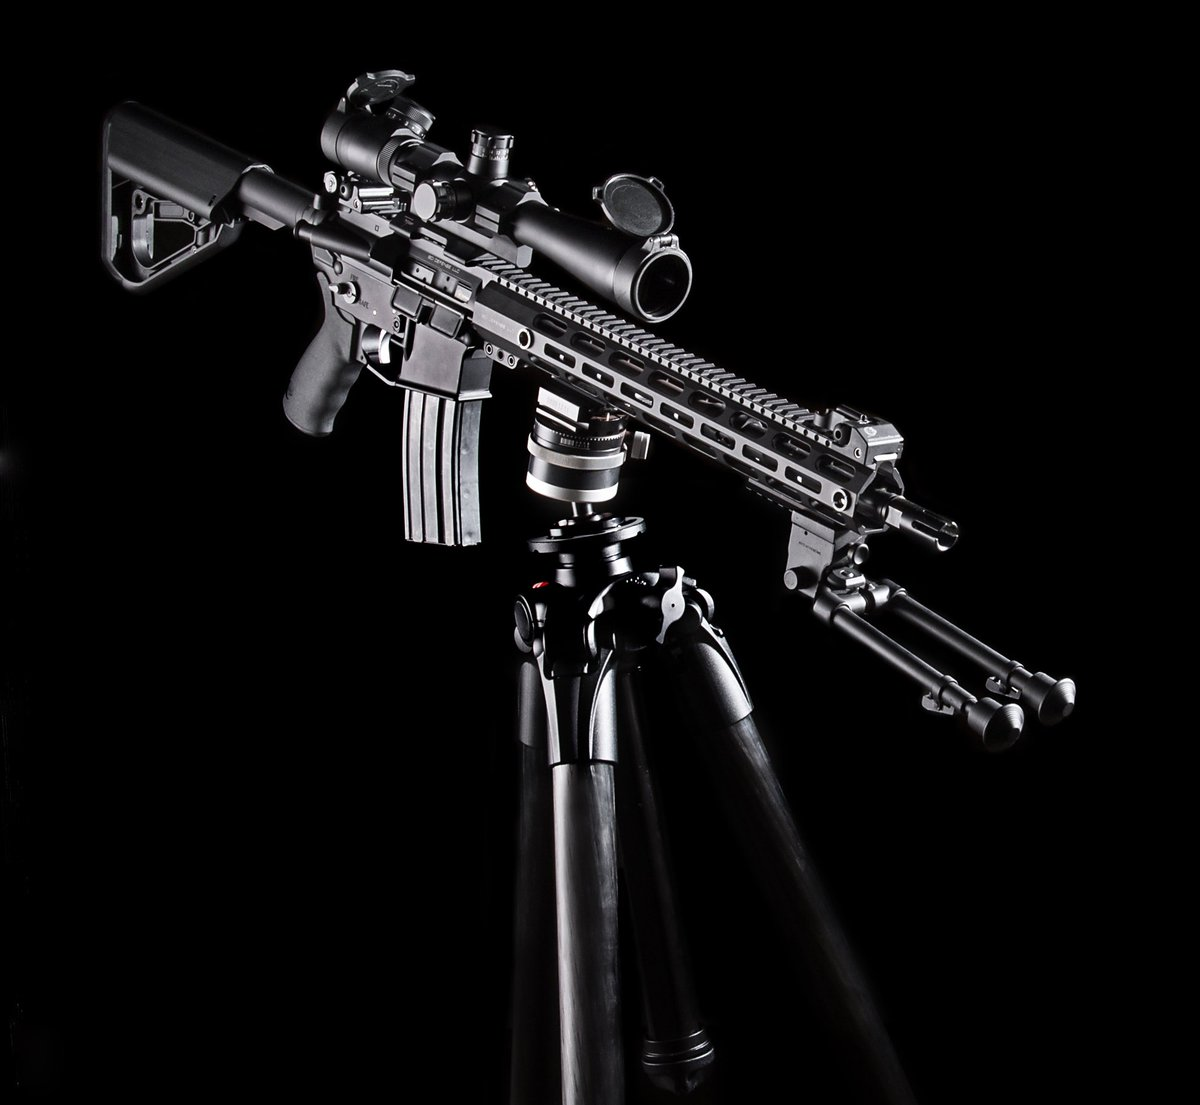 No better time to start that AR15 build. #TheBestMachinedGun #ProfessionalSeries #Sniper #ALG #Ergo #B5Systems #Faxon<br>http://pic.twitter.com/9E1mpOXNvb